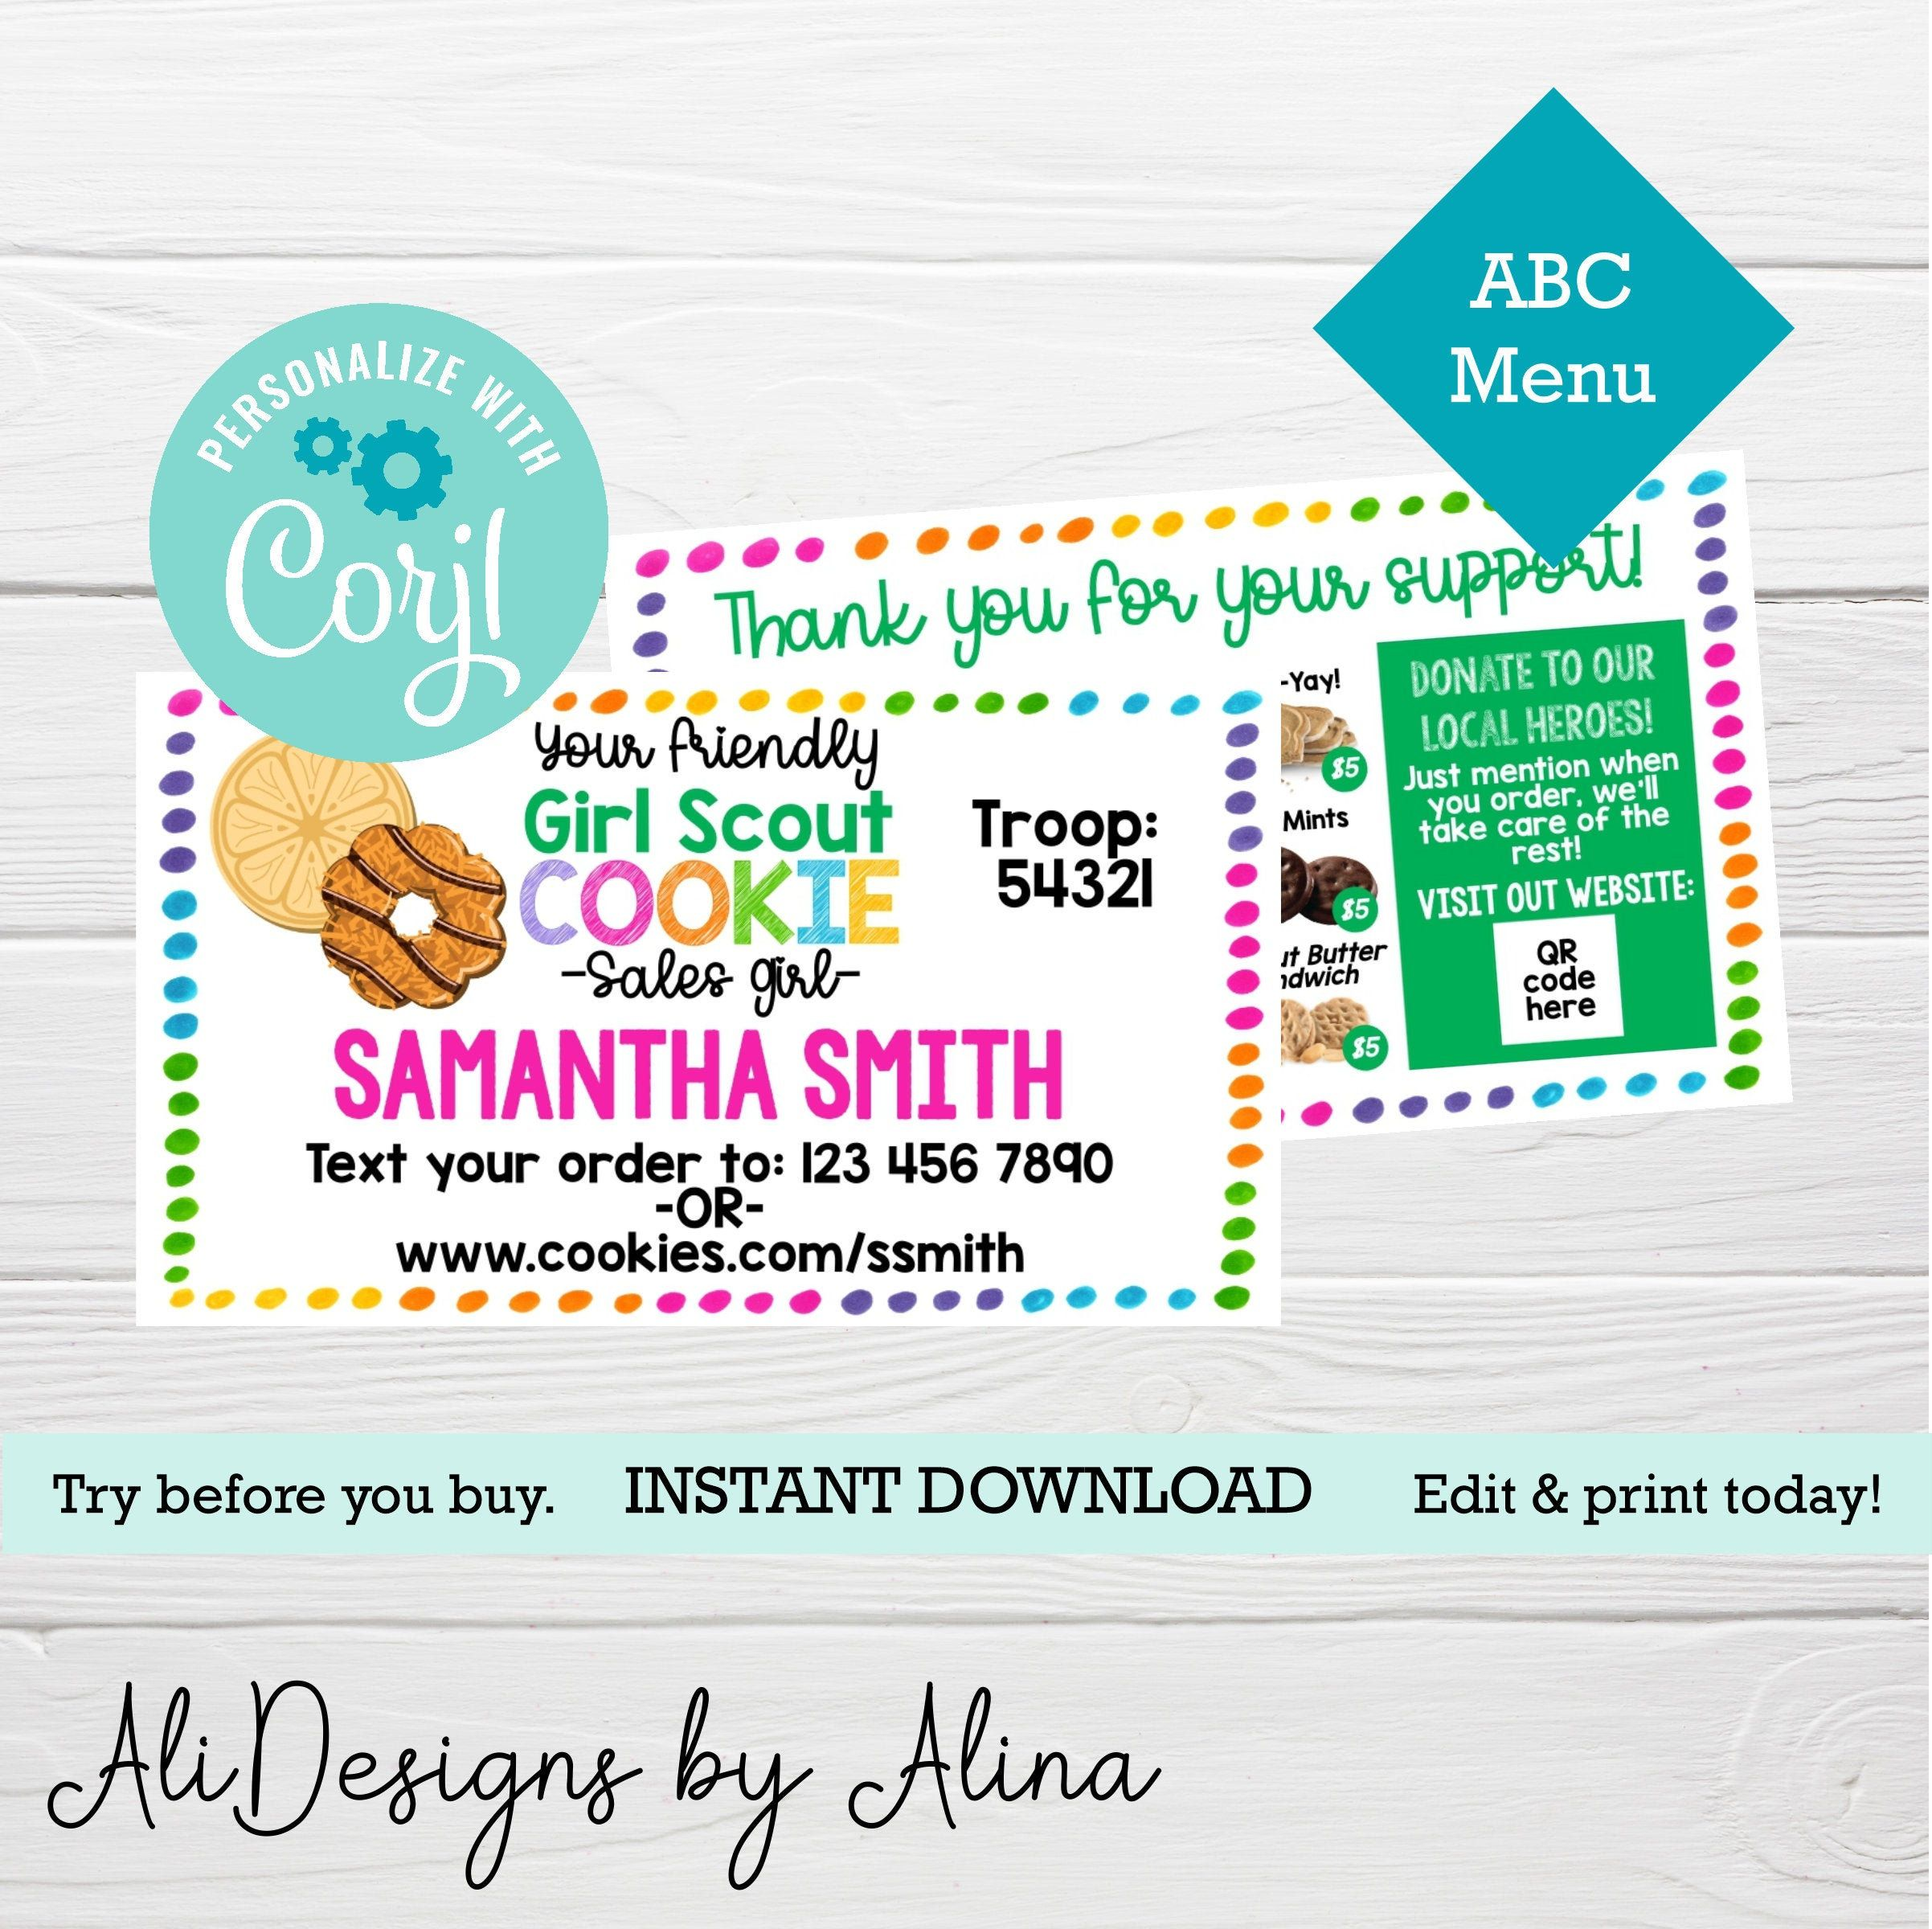 Girl Scout Cookie Sale Printable Business Cards 2021 Abc Etsy In 2021 Thank You Card Template Printable Business Cards Girl Scout Cookies